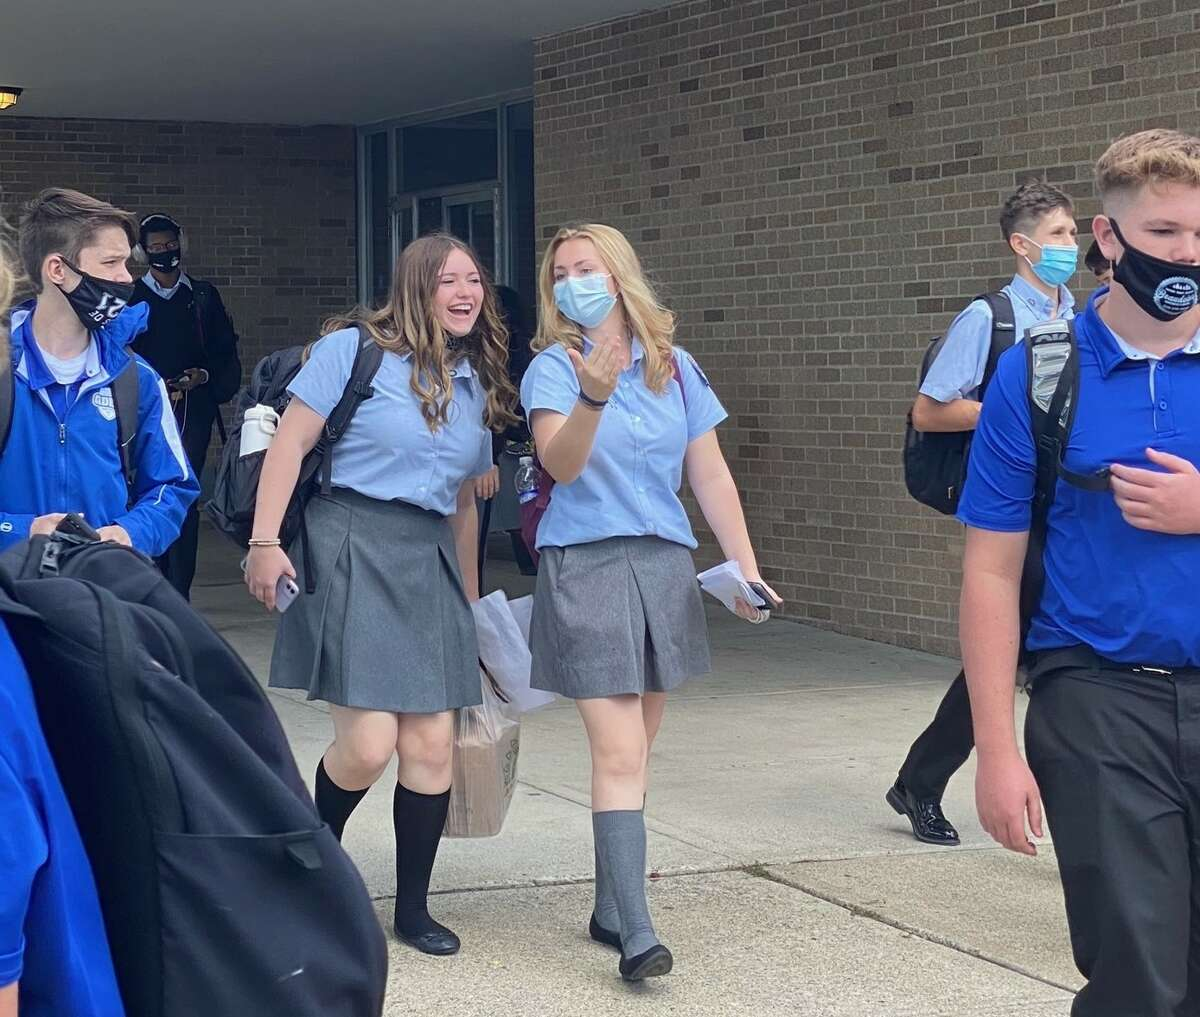 Students attend school at the La Salle Institute in Troy.